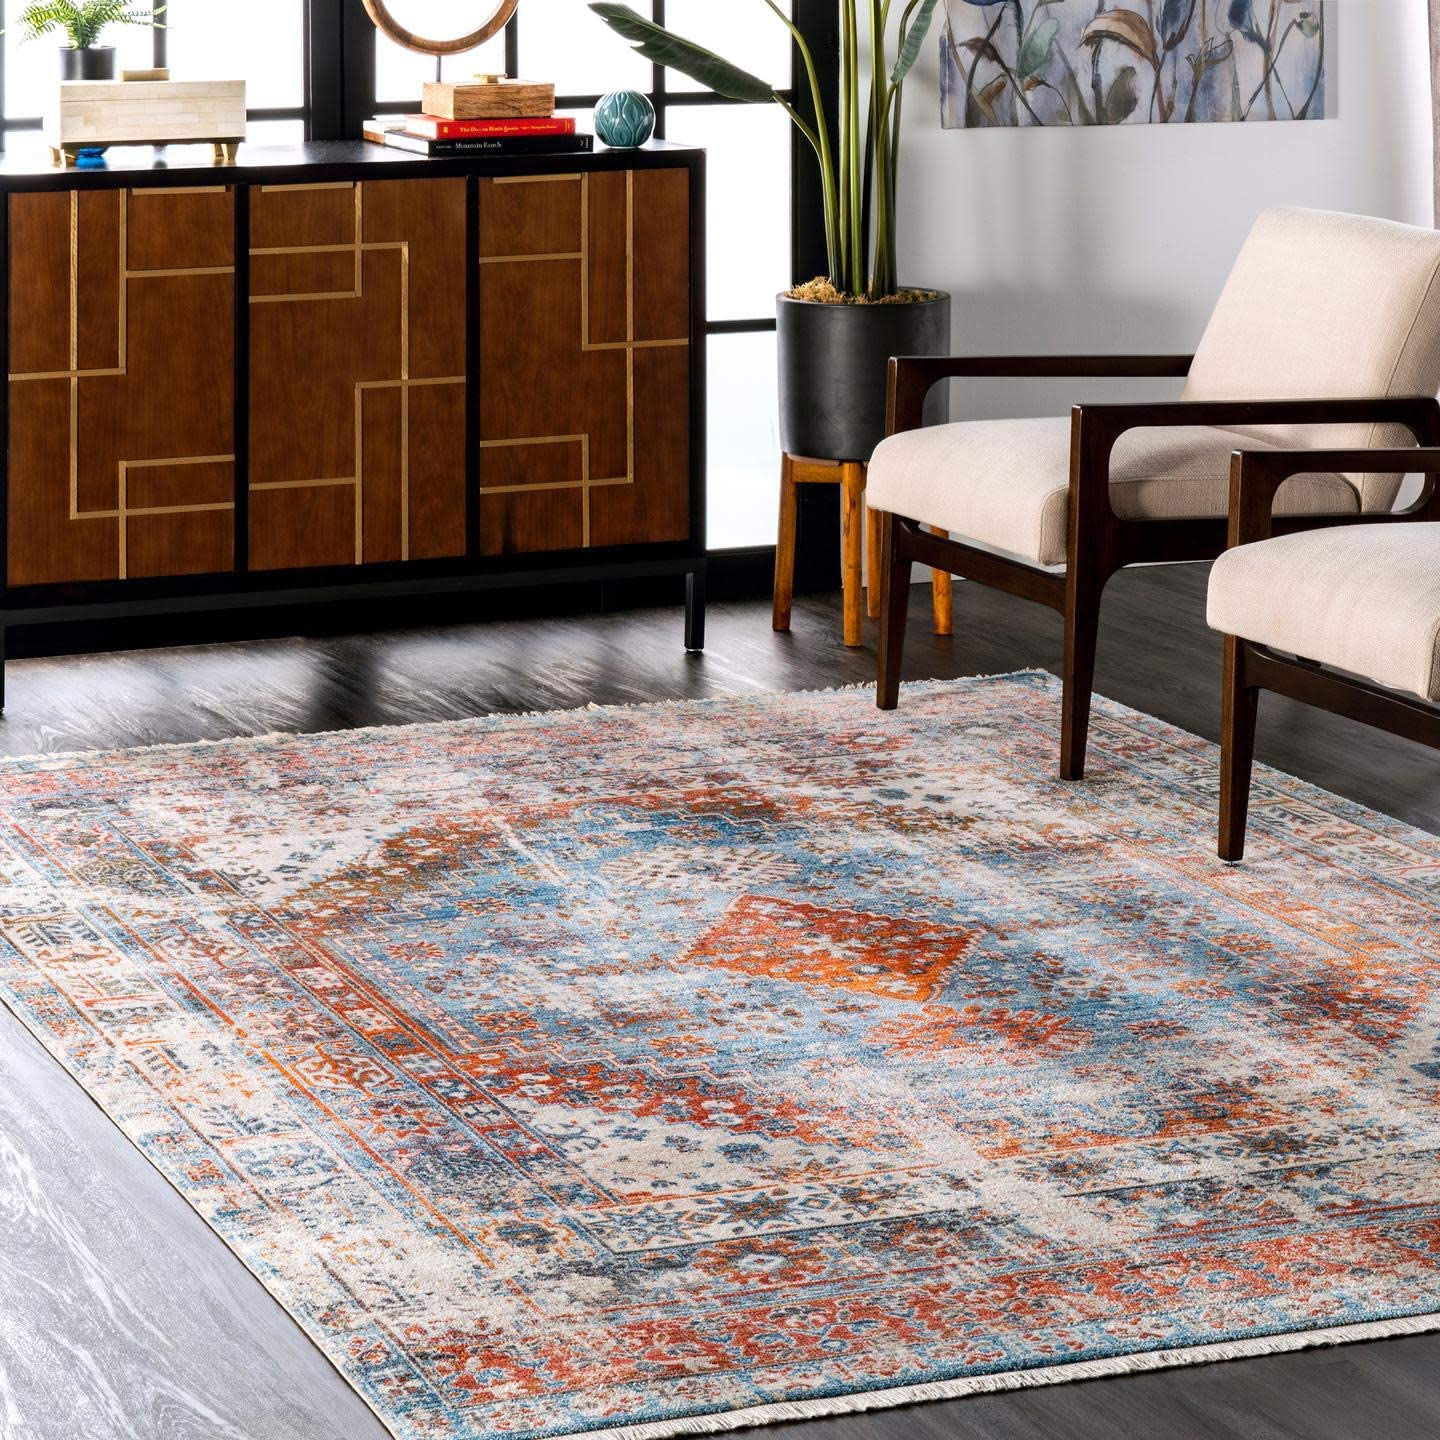 nuLOOM Sales of SALE items from new works Farley Max 53% OFF Medallion Fringe Area Blue Round 5' Rug